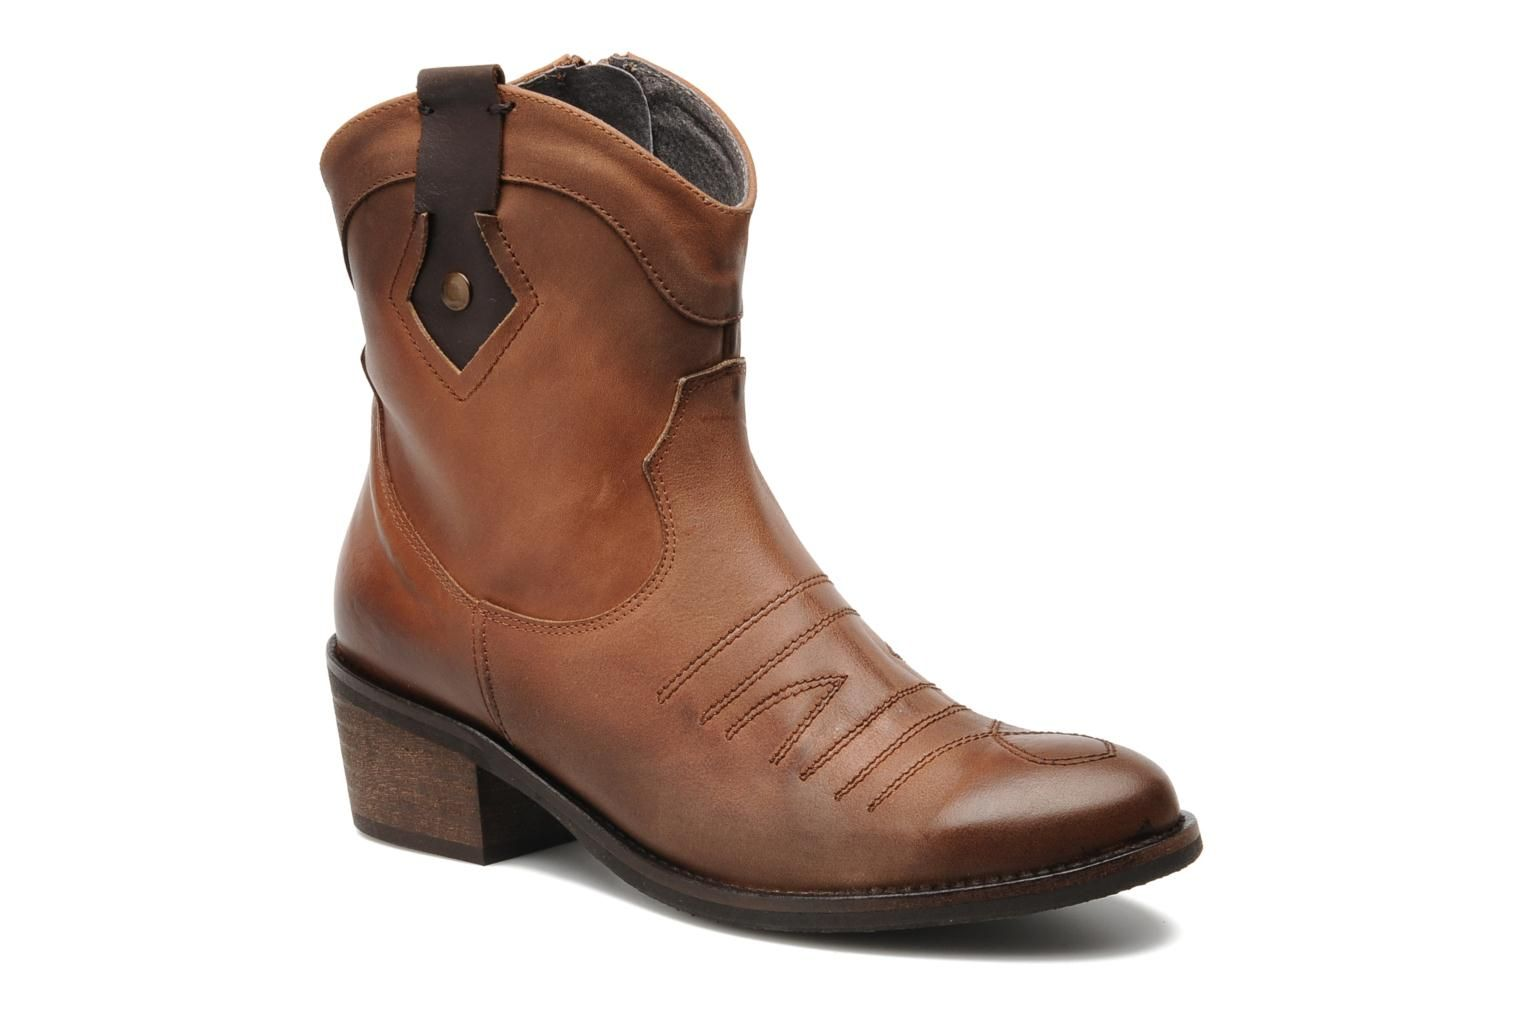 Uk BluegenexbrownSarenza Florencya By Ankle Your Boots 8wP0Okn